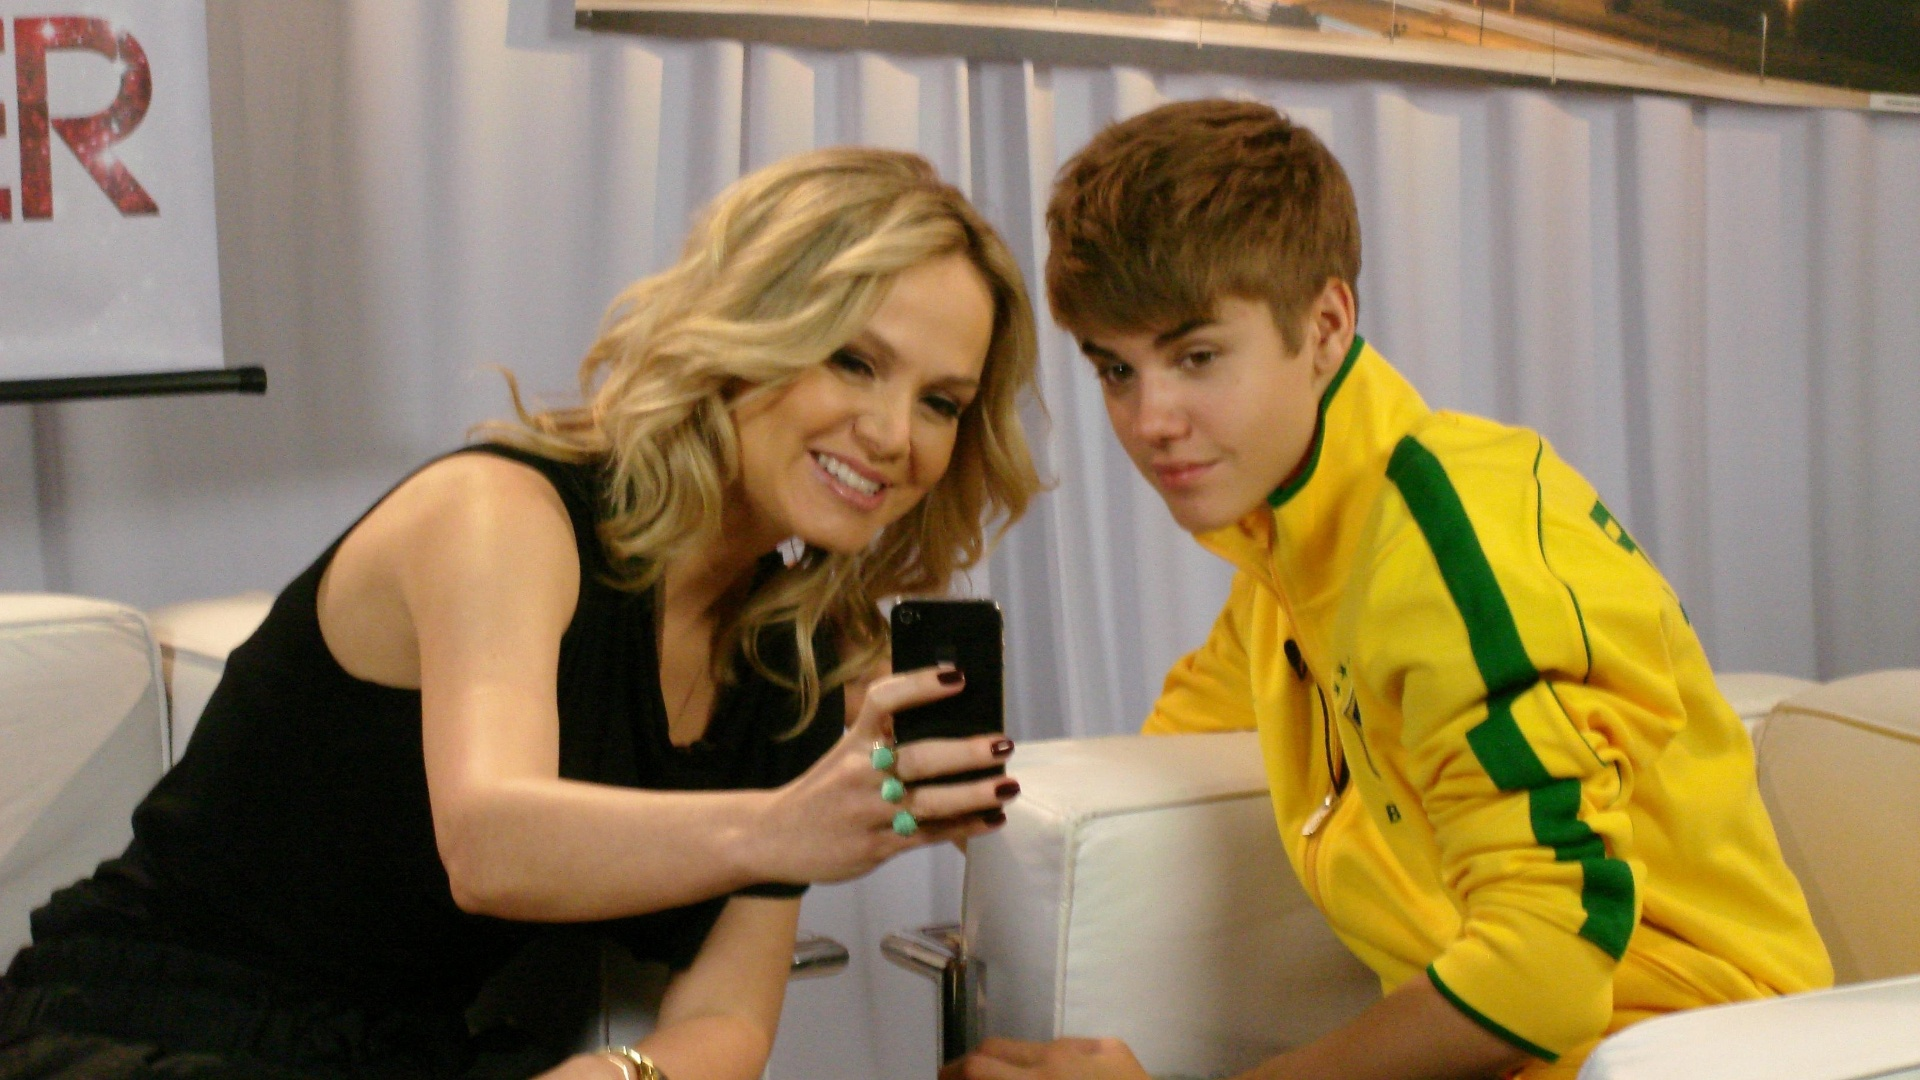 Eliana entrevista Justin Bieber durante passagem do cantor pelo Brasil (16/10/2011)